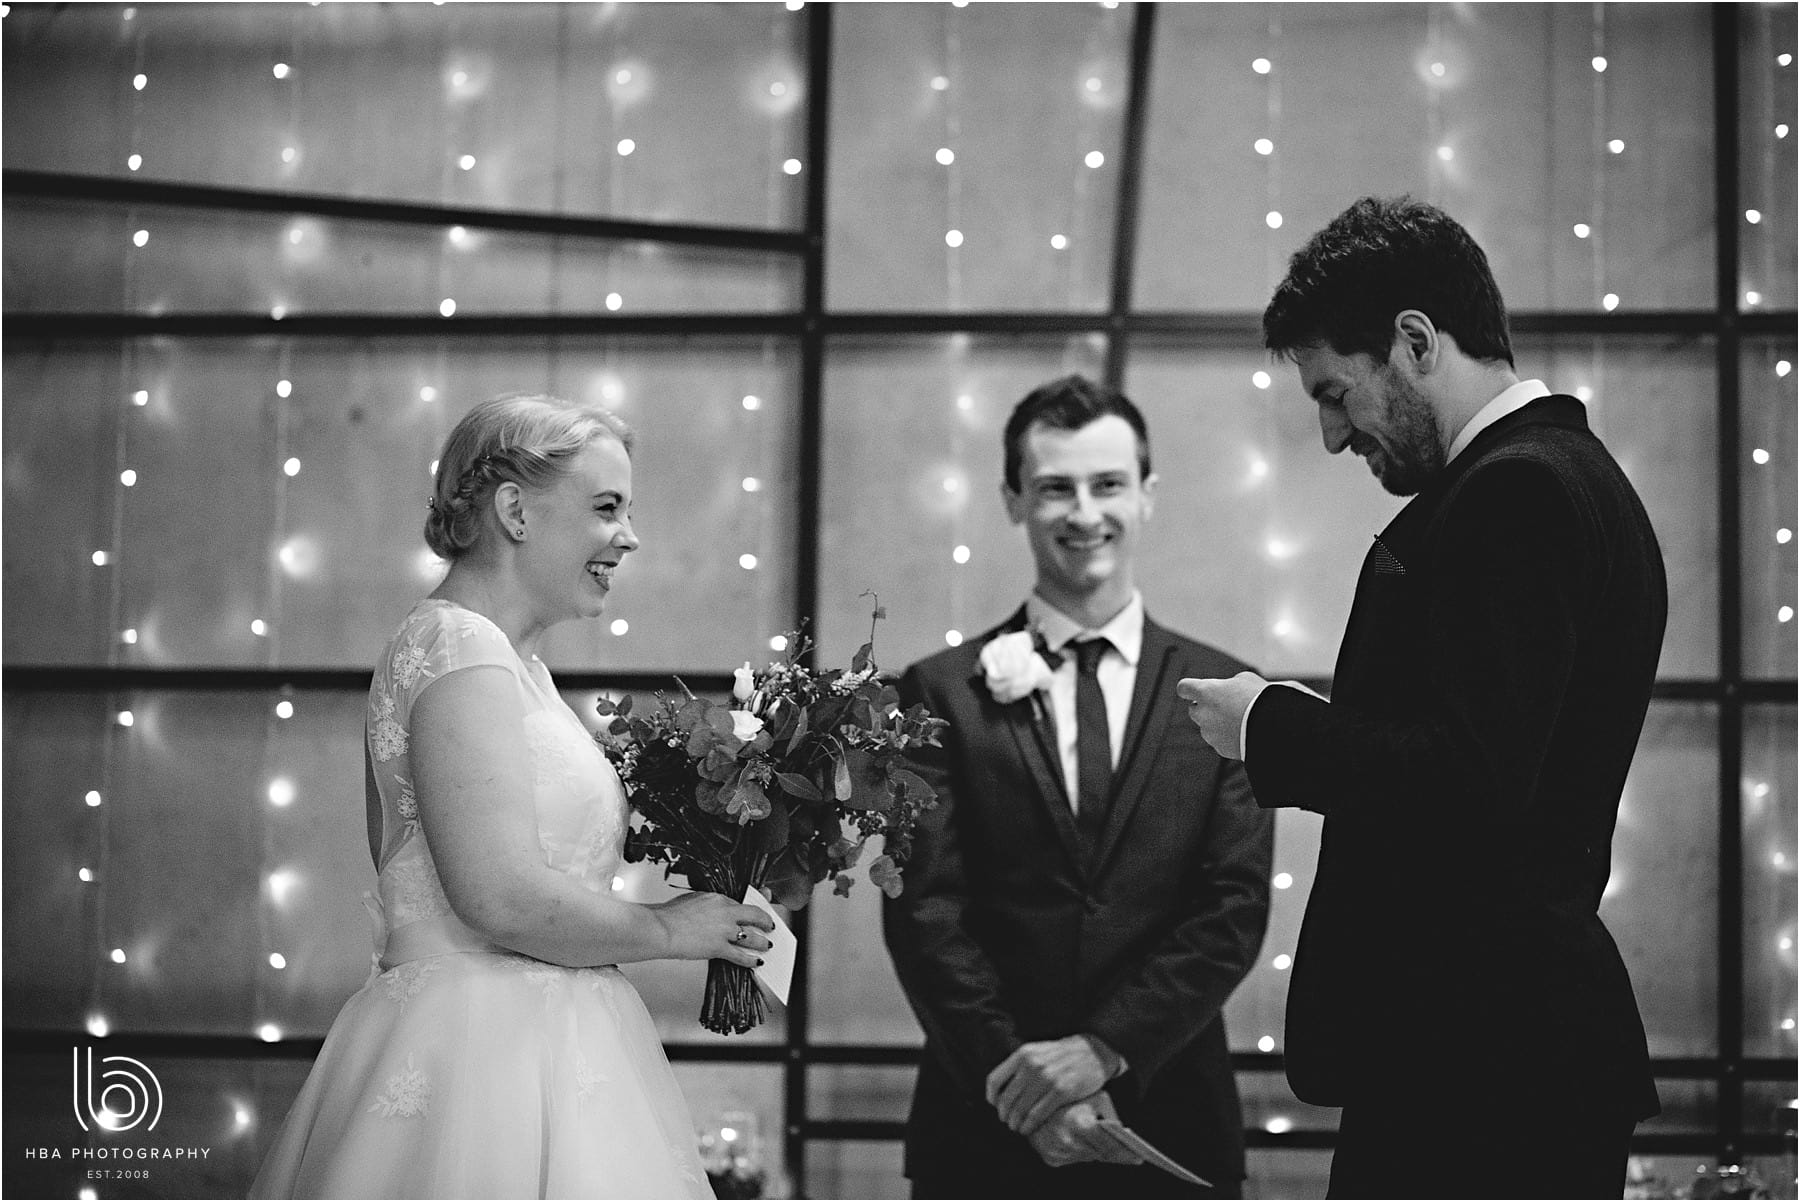 The bride and groom saying thier vows in black-and-white